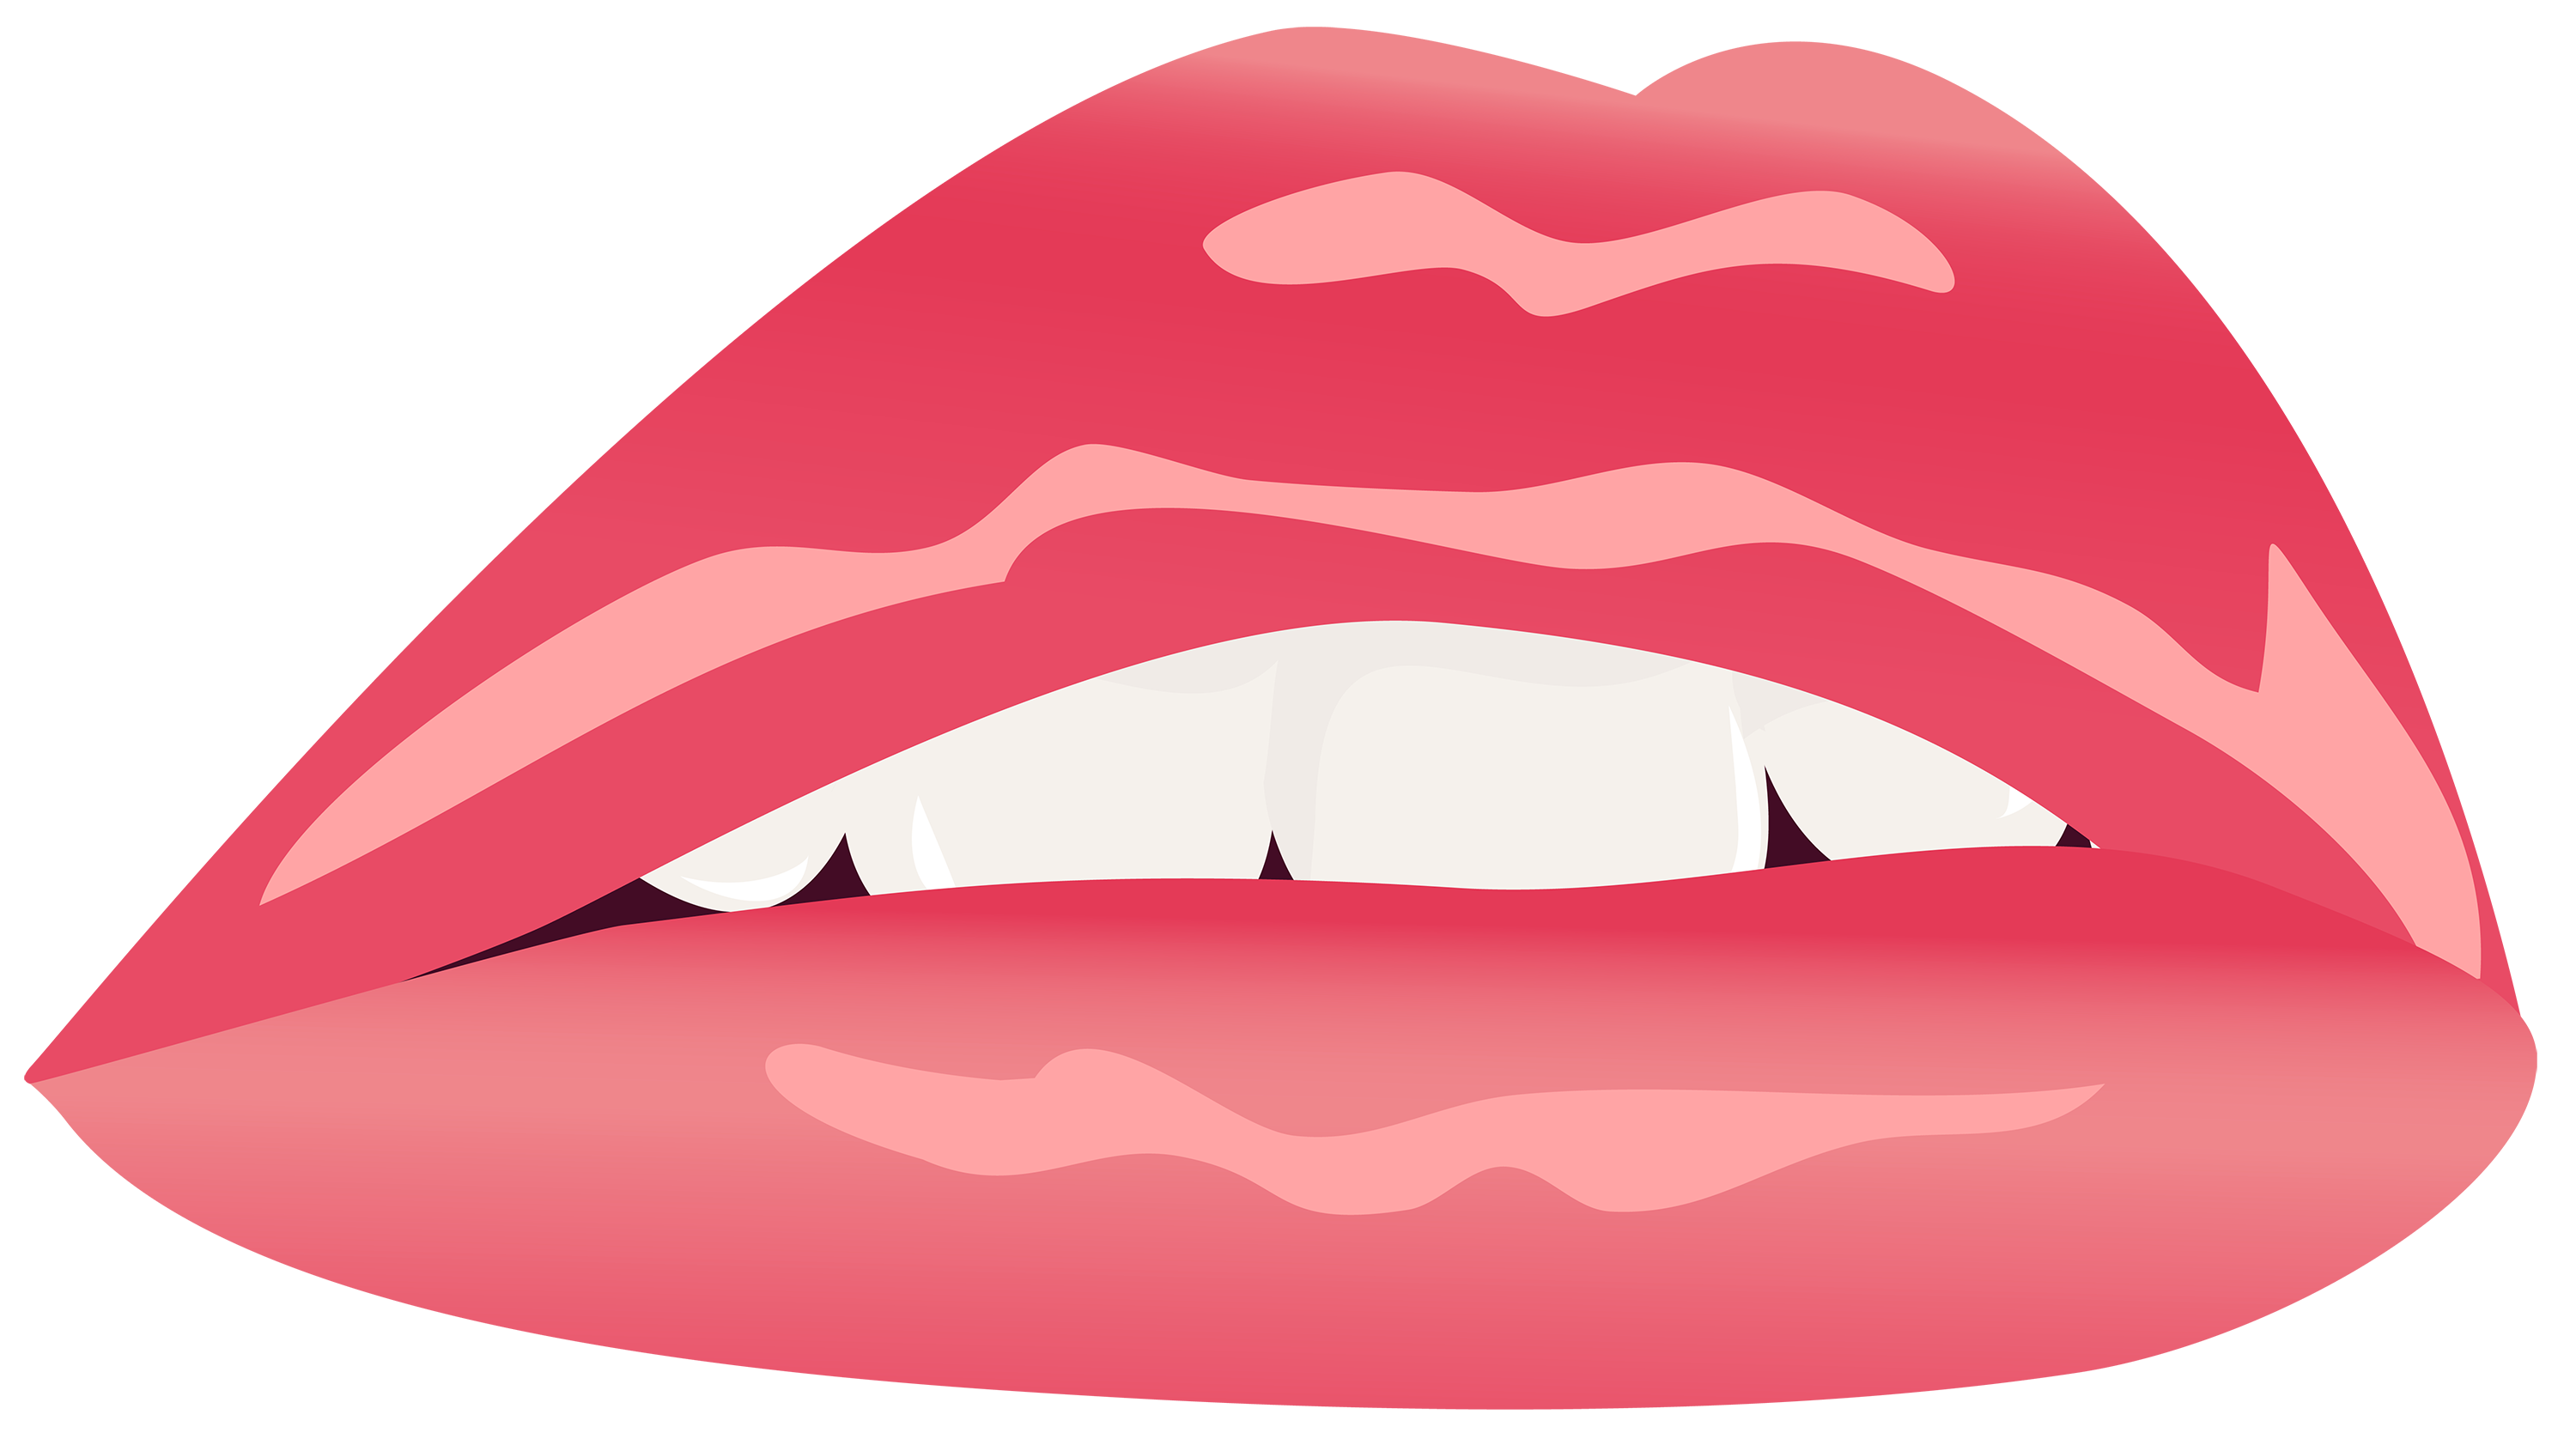 Red lips png image. Lipstick clipart border